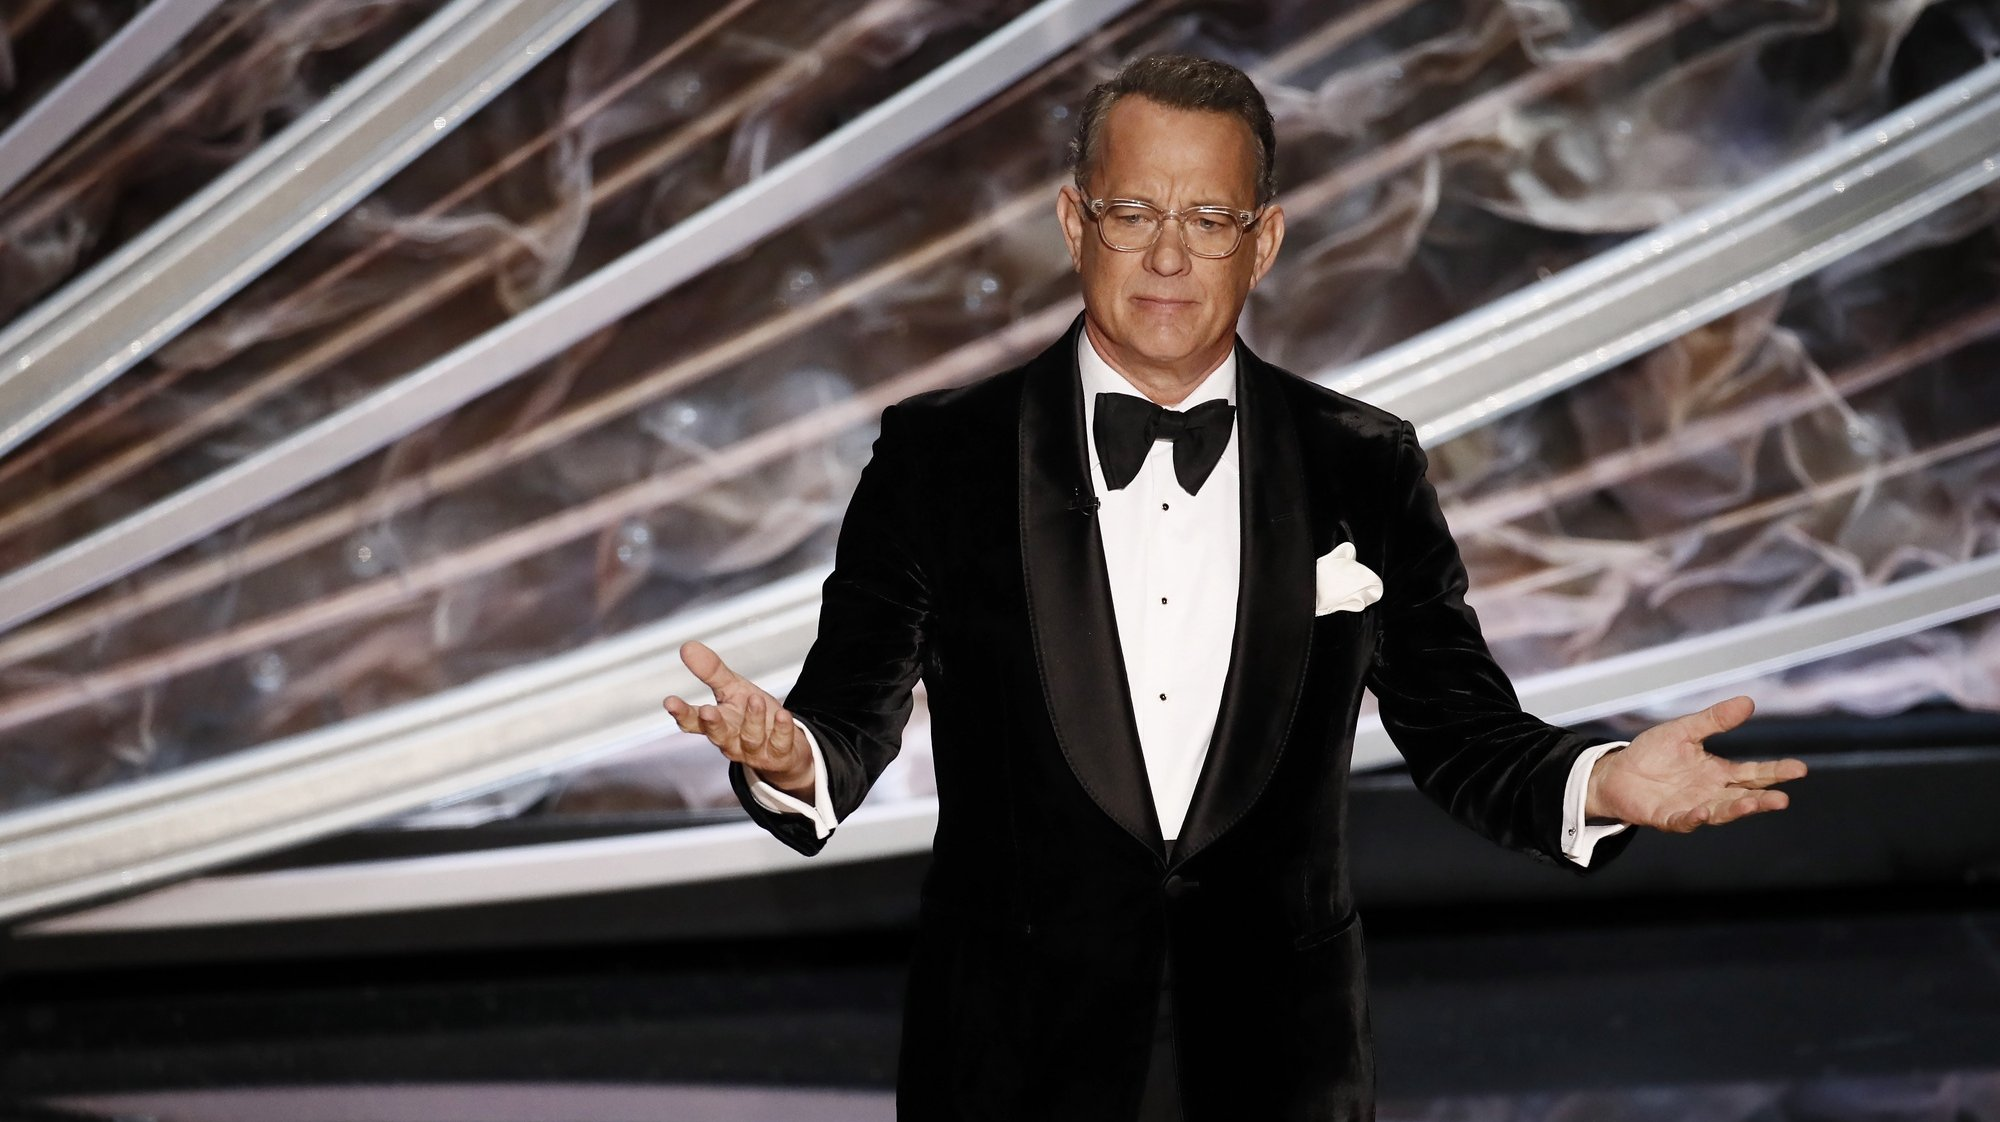 epa08207736 Tom Hanks during the 92nd annual Academy Awards ceremony at the Dolby Theatre in Hollywood, California, USA, 09 February 2020. The Oscars are presented for outstanding individual or collective efforts in filmmaking in 24 categories.  EPA/ETIENNE LAURENT